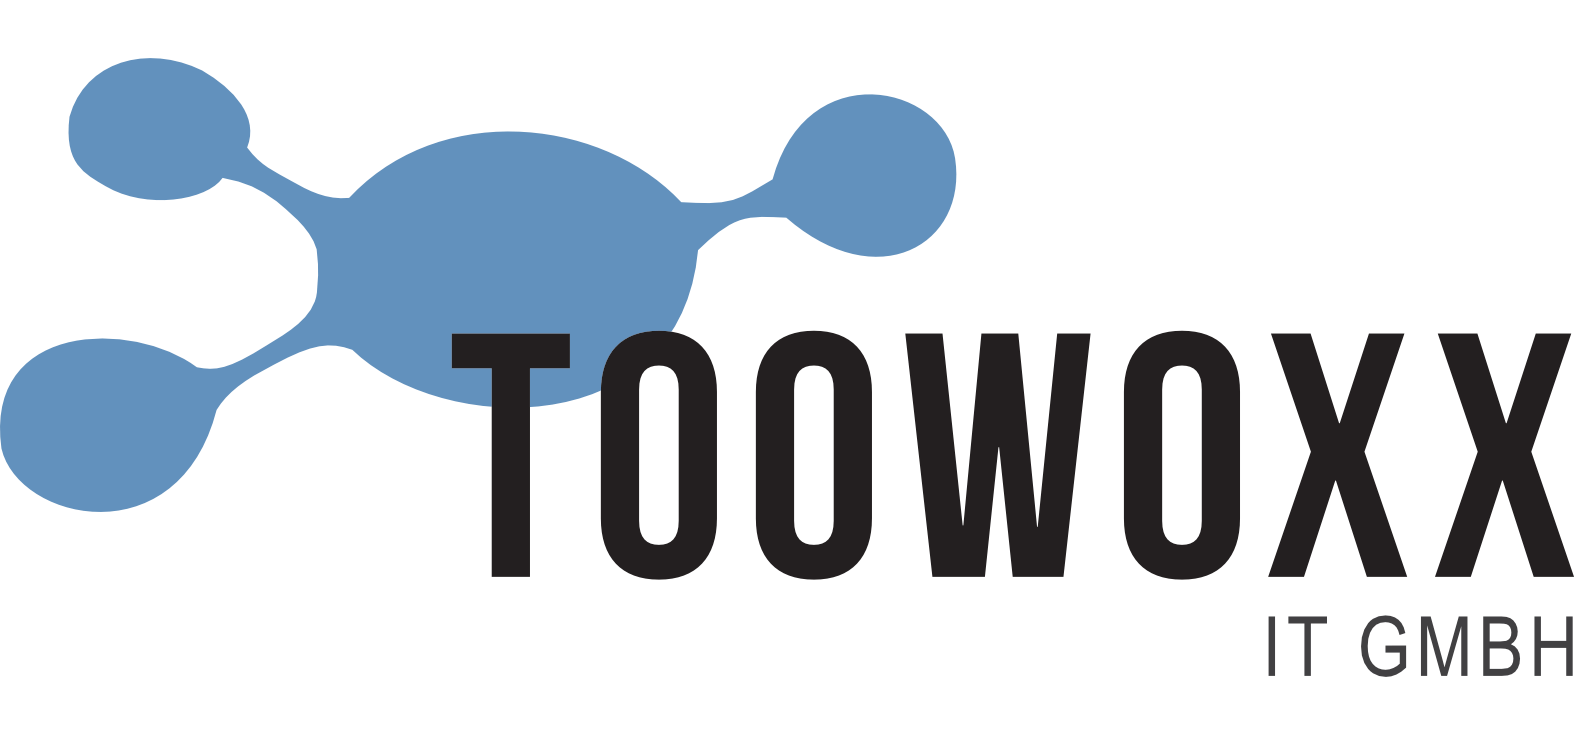 Toowoxx IT GmbH